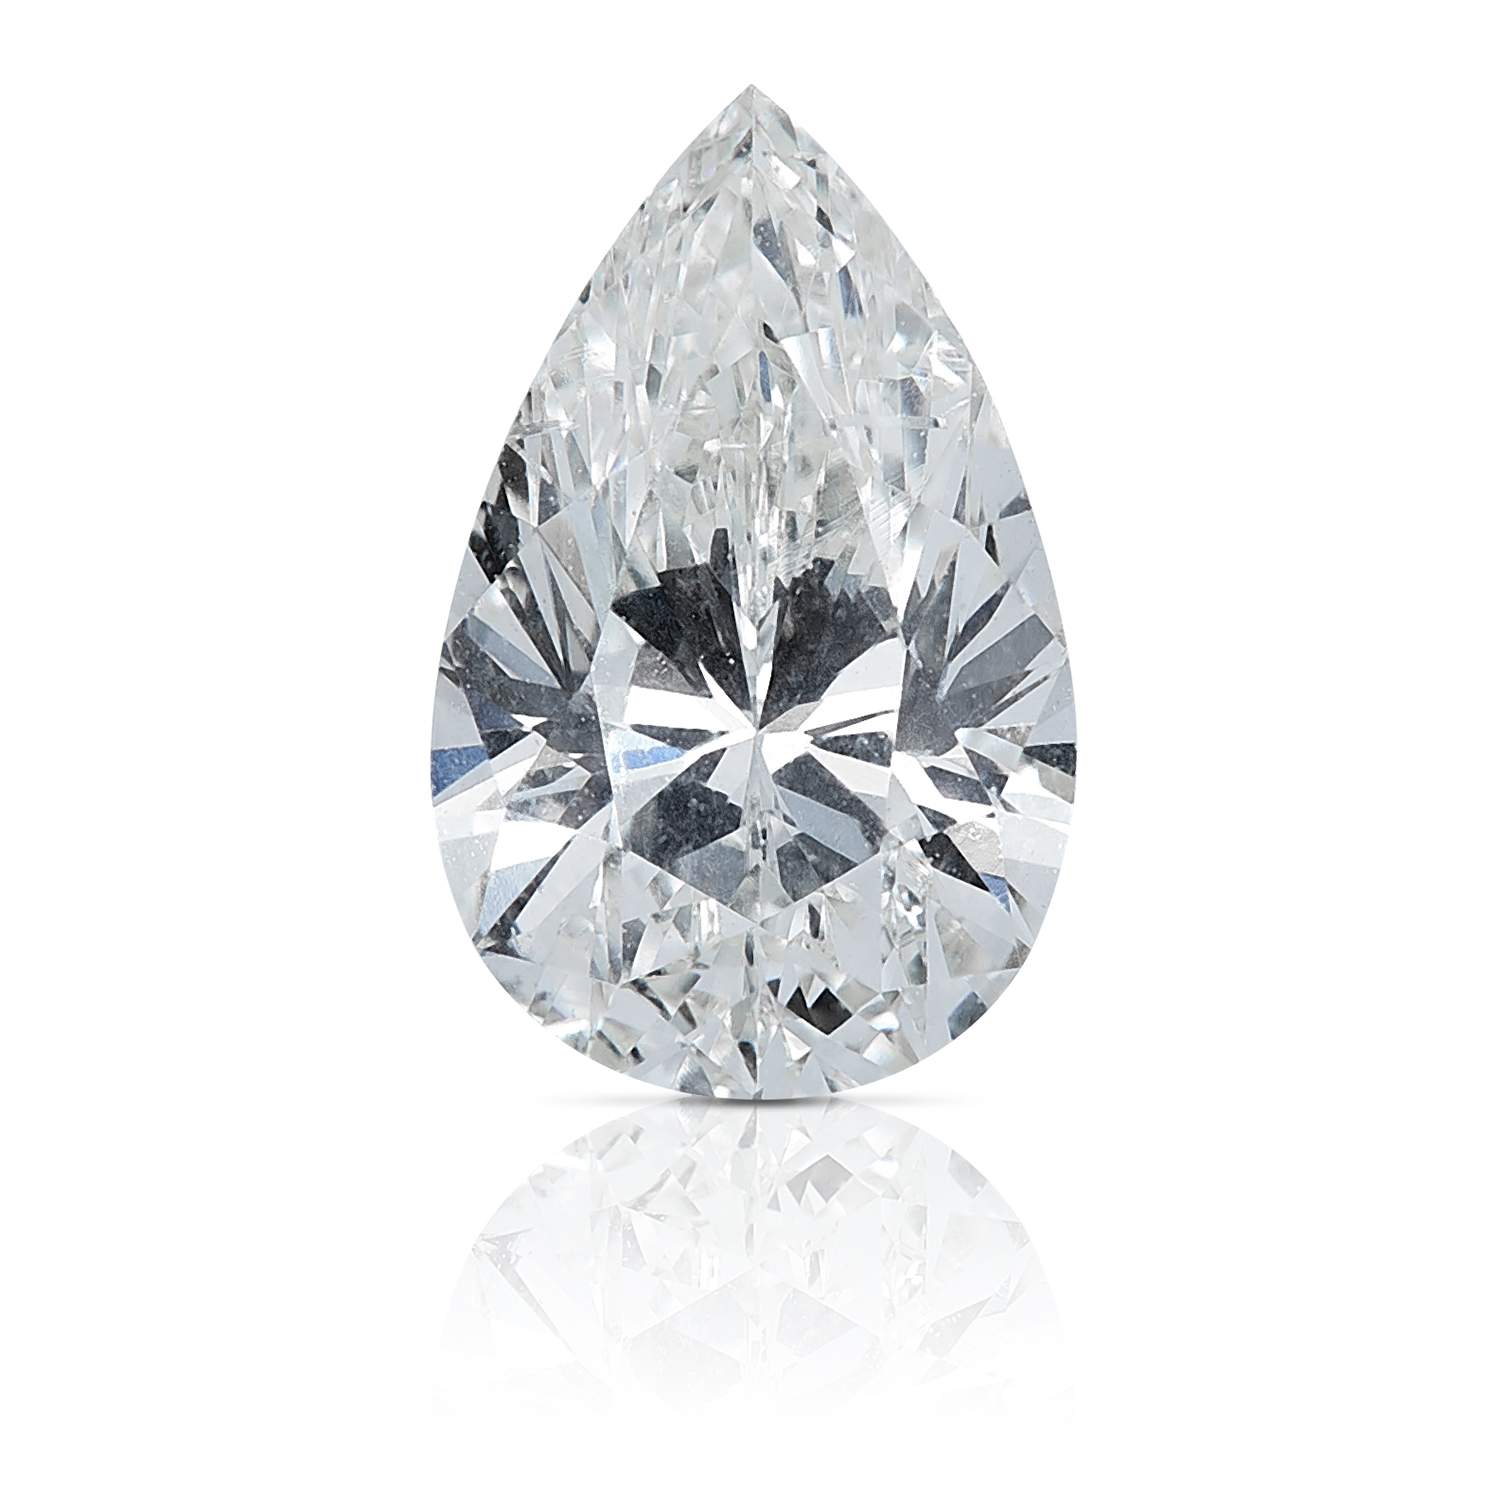 A 0.72ct PEAR SHAPED BRILLIANT CUT DIAMOND, UNMOUNTED.